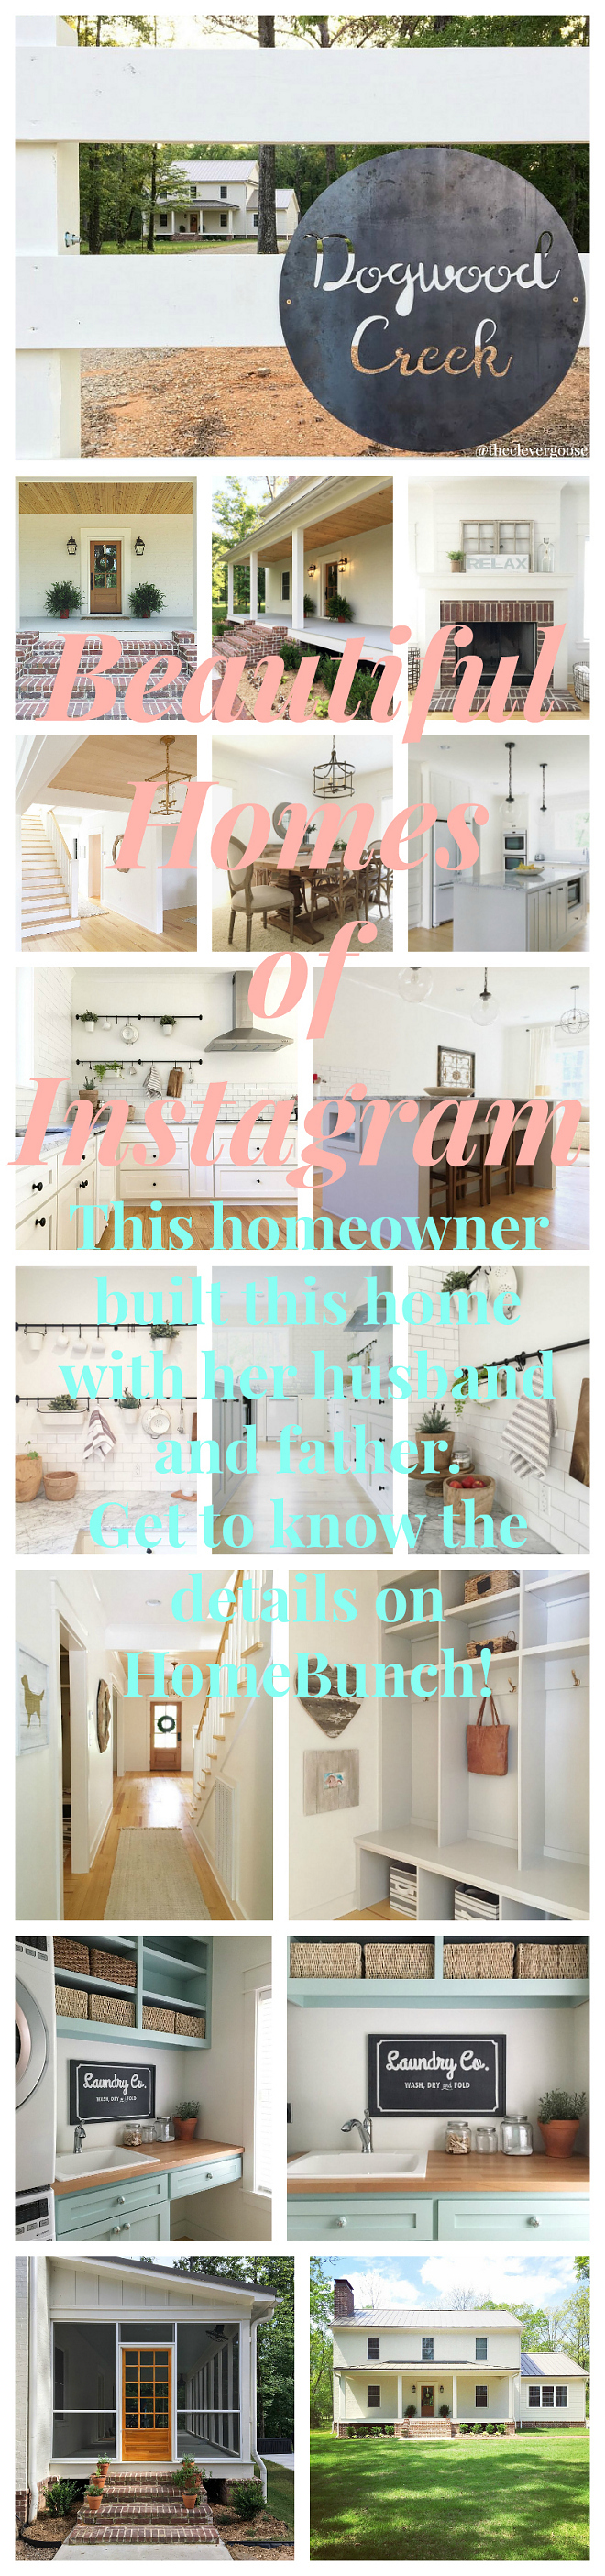 Beautiful Homes of Instagram. This Homeowner built this home with her husband and father. Get to know the details on HomeBunch!